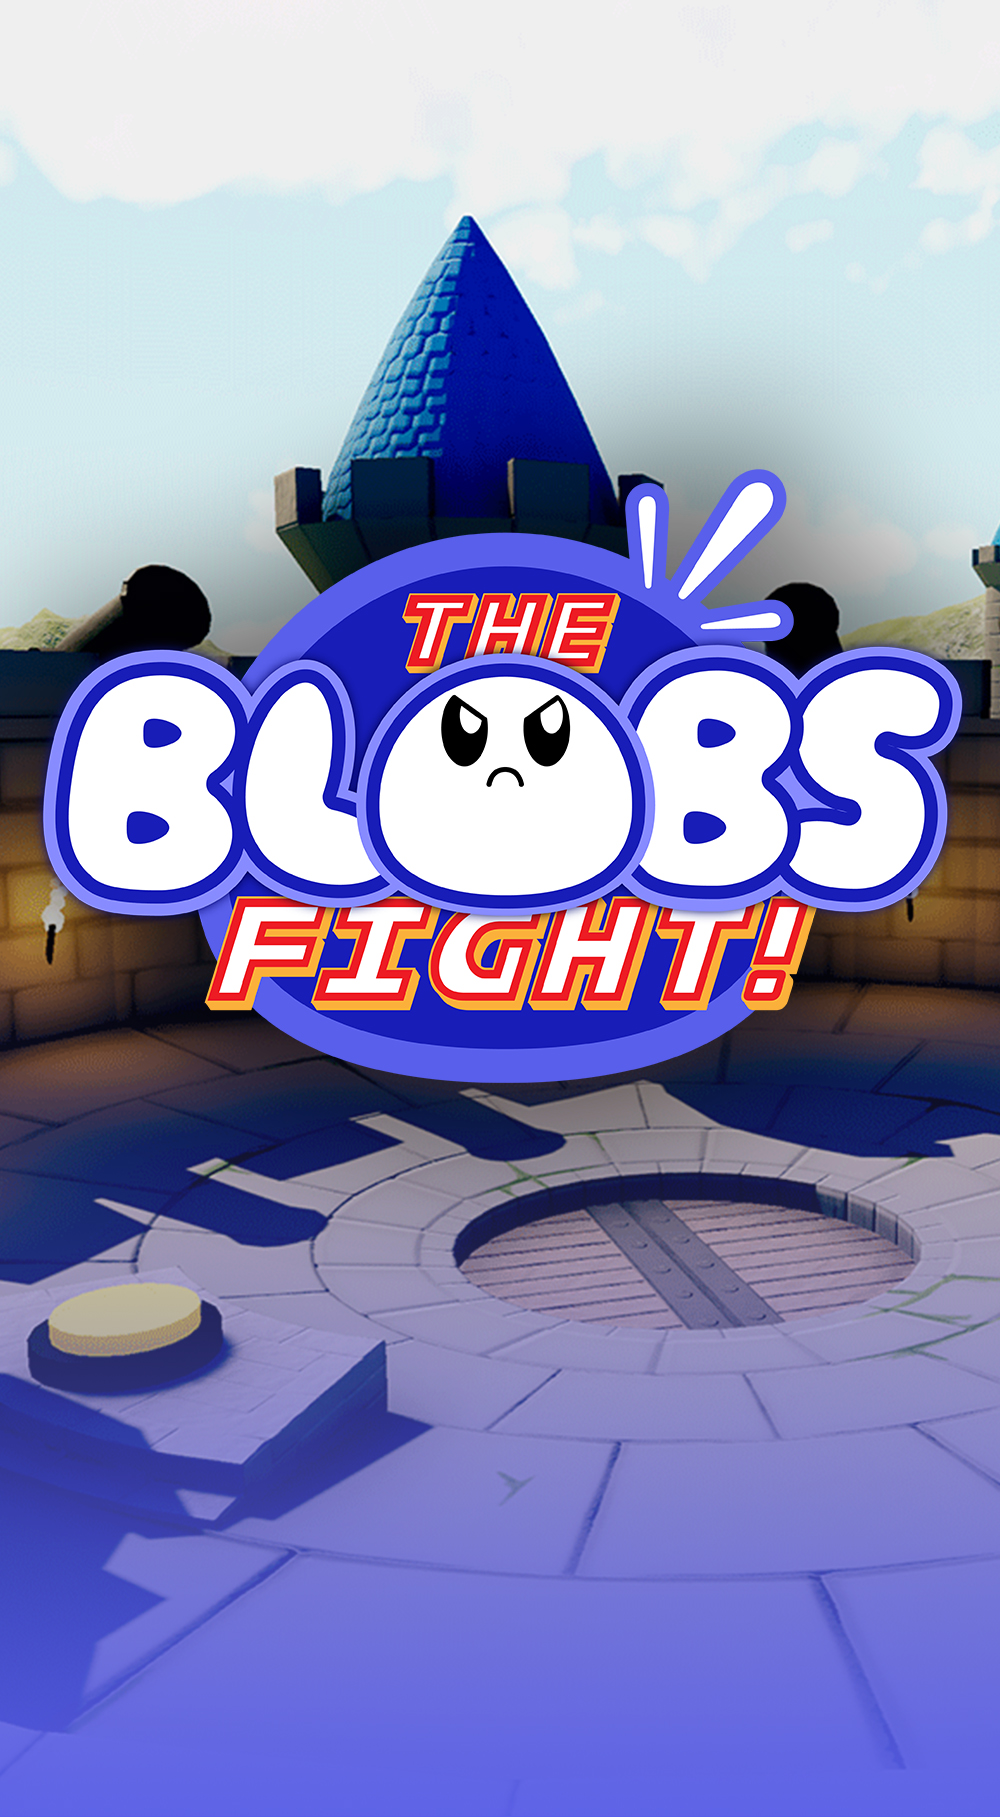 Blobs_Games-Page-Banners.jpg